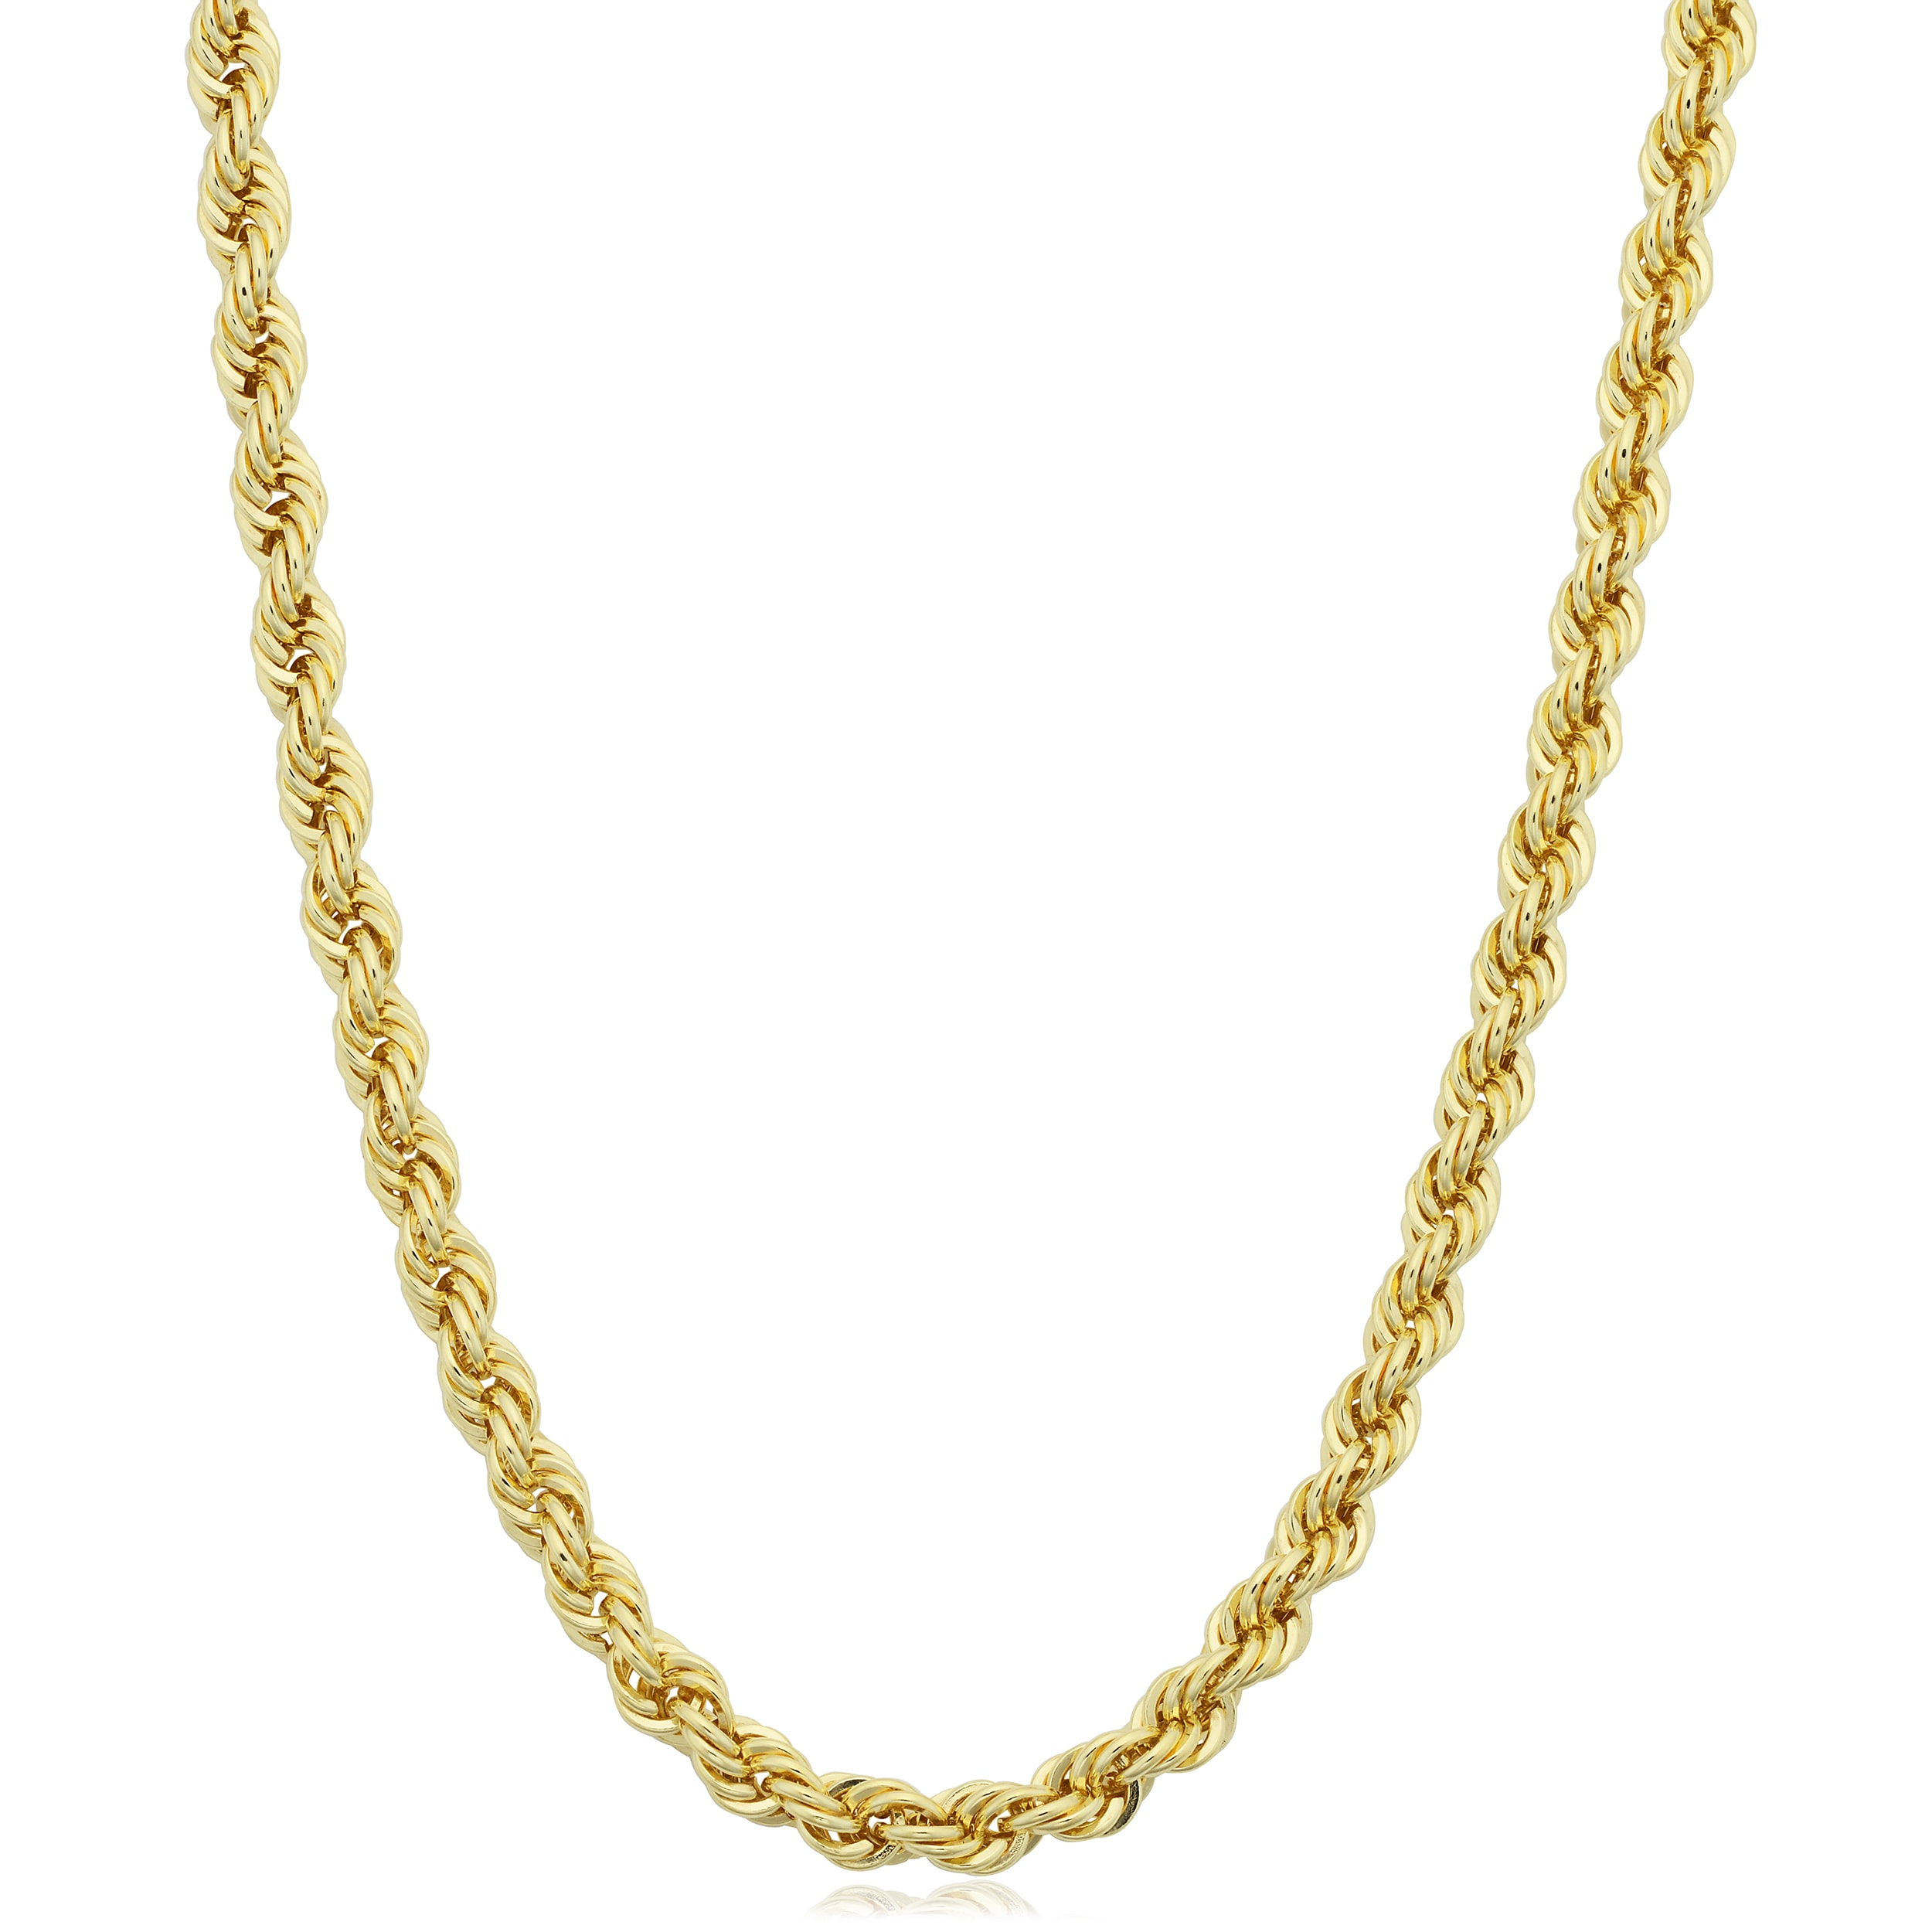 657c8fa0759f0 14k Yellow Gold Filled Men's 3.2-mm Rope Chain Necklace (16-36 inches)